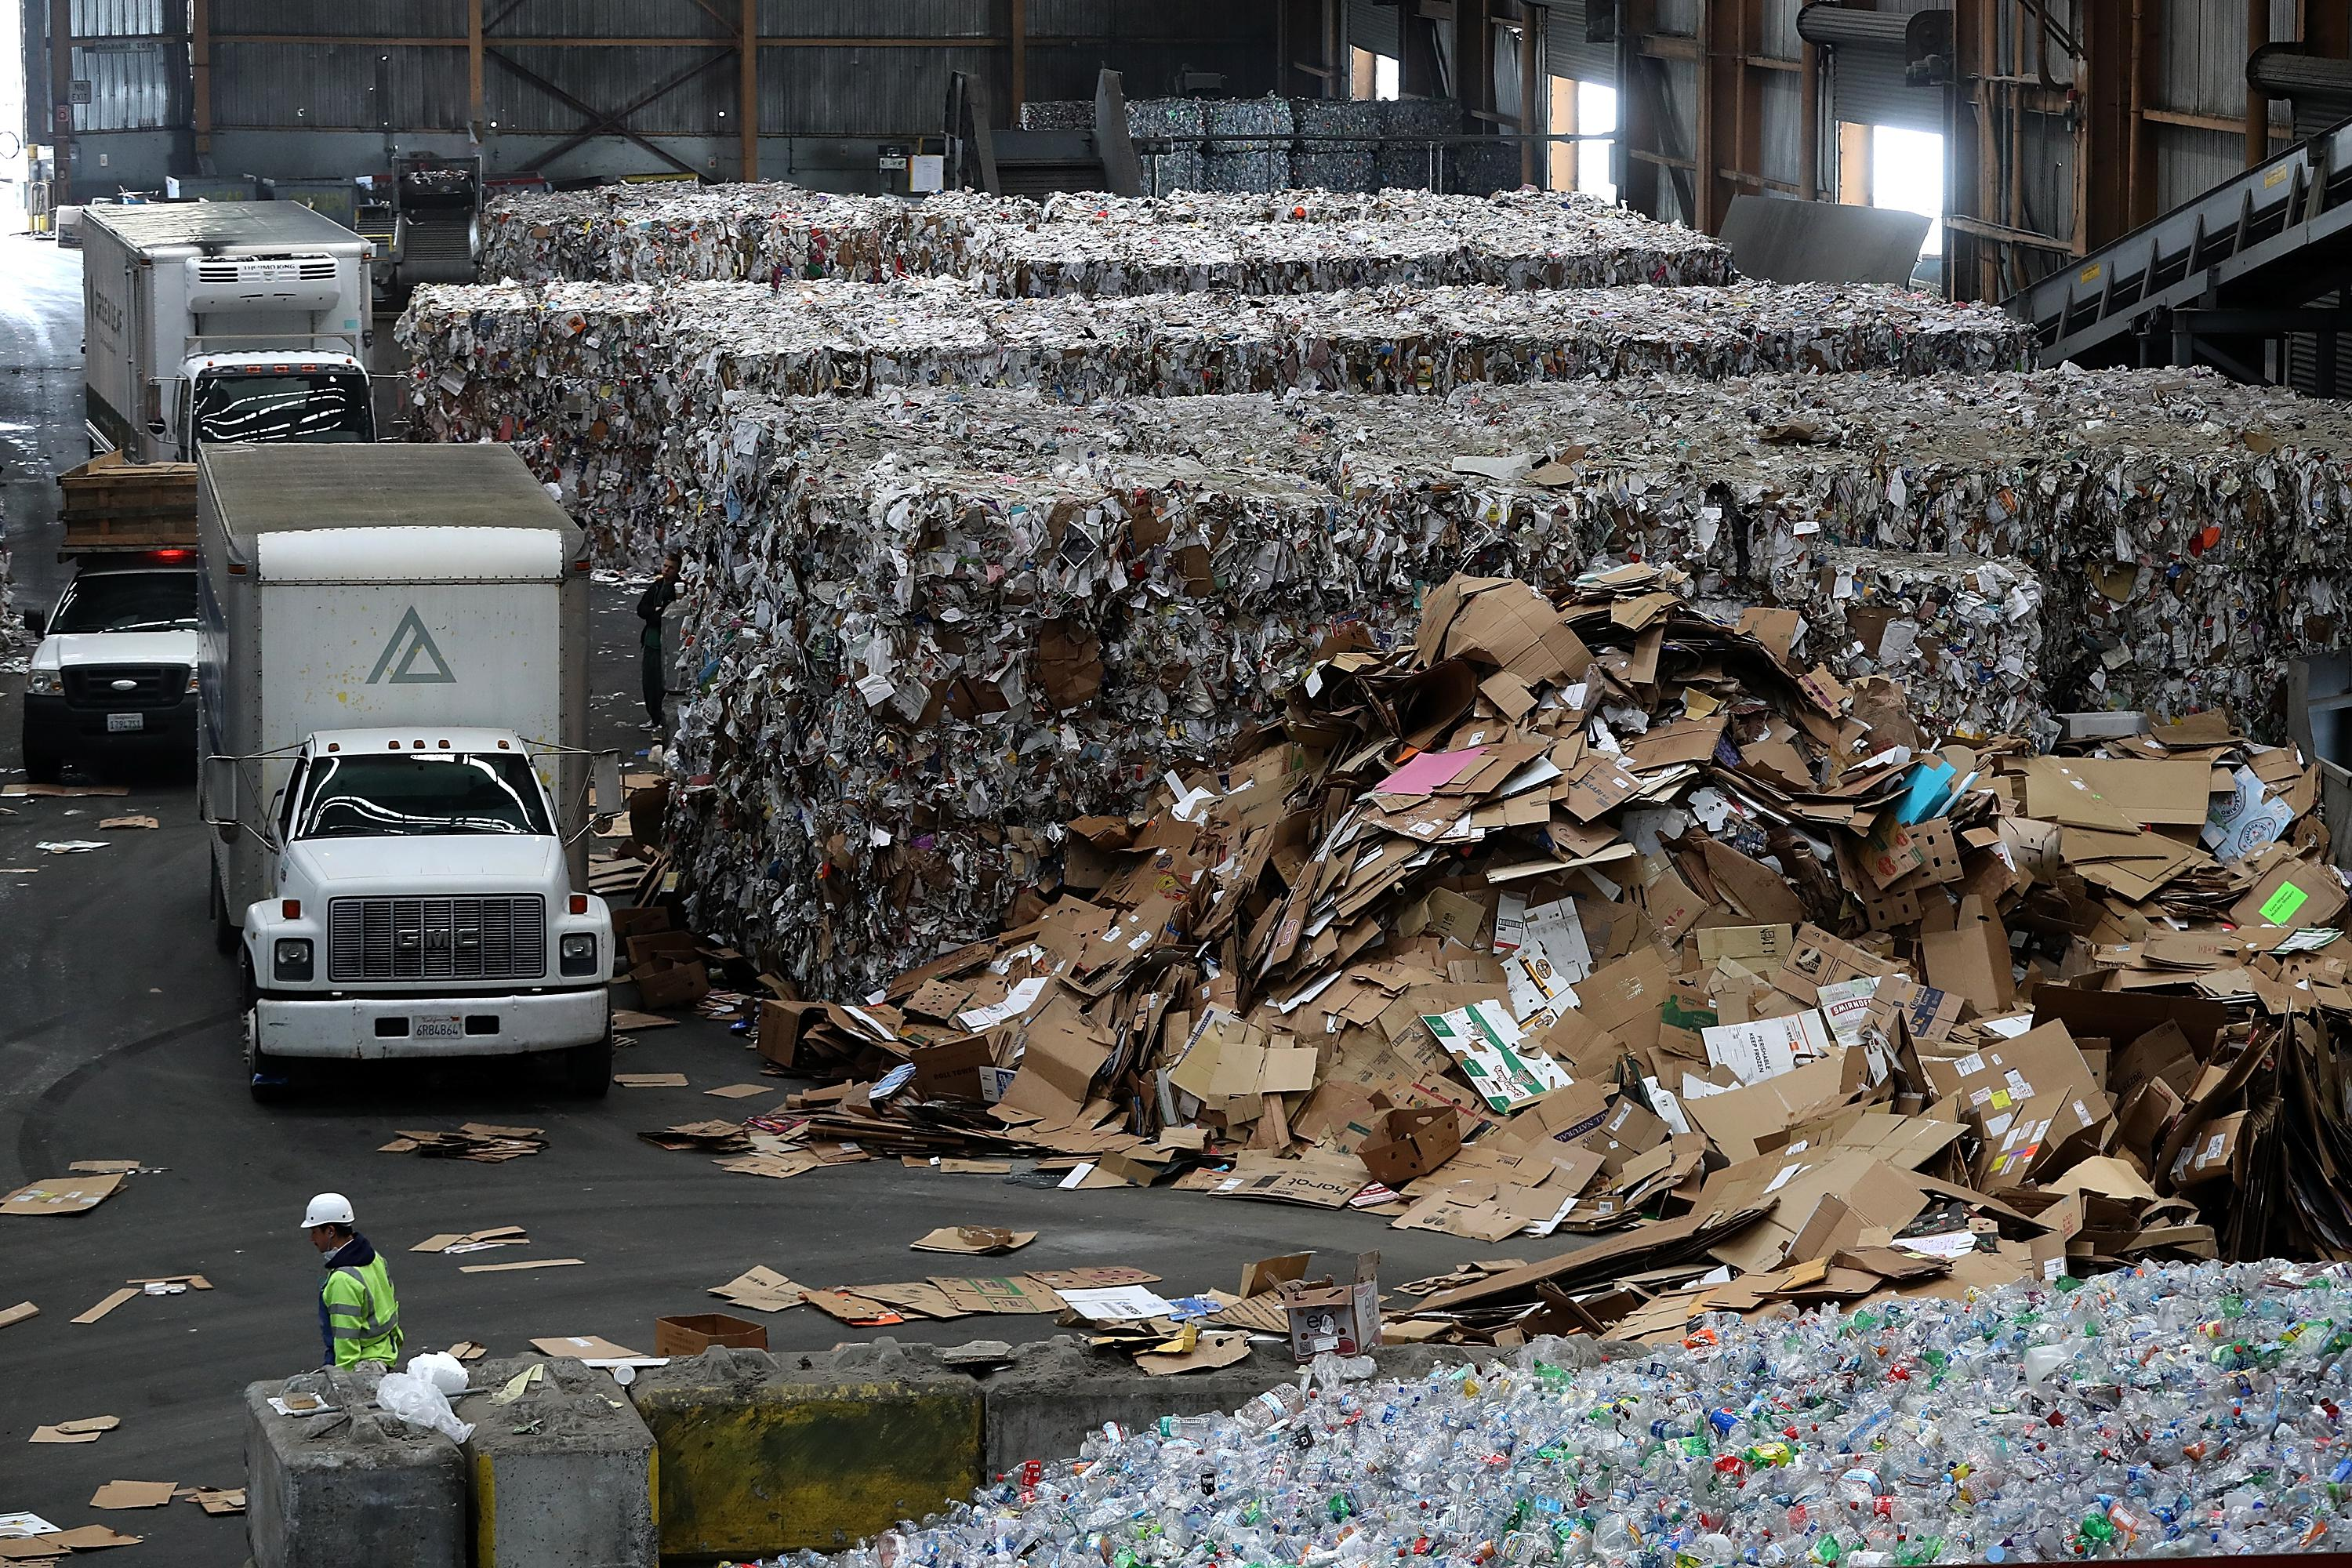 Piles and bales of recyclable cardboard inside a giant warehouse